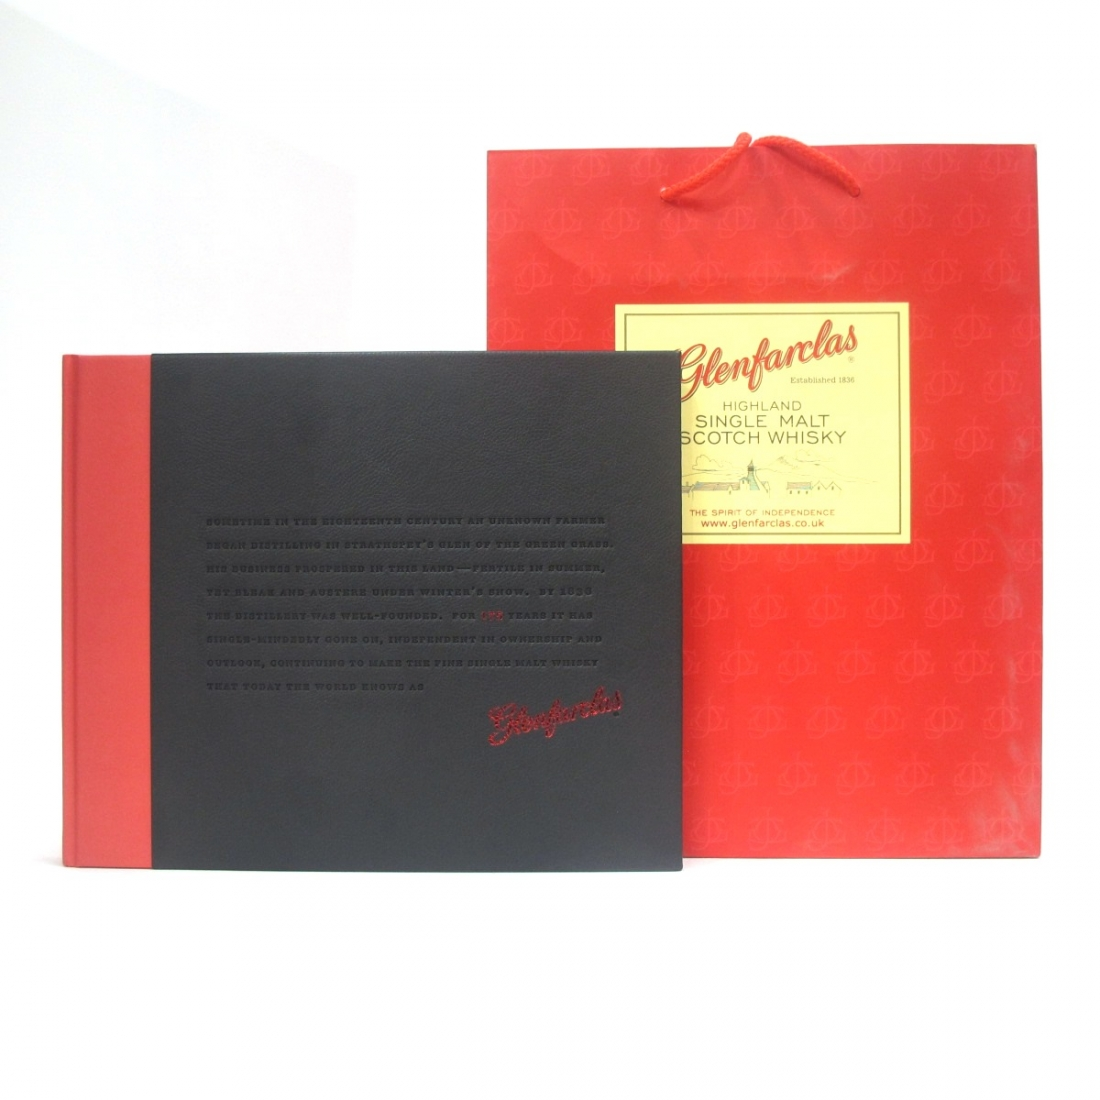 Glenfarclas An Independence Book